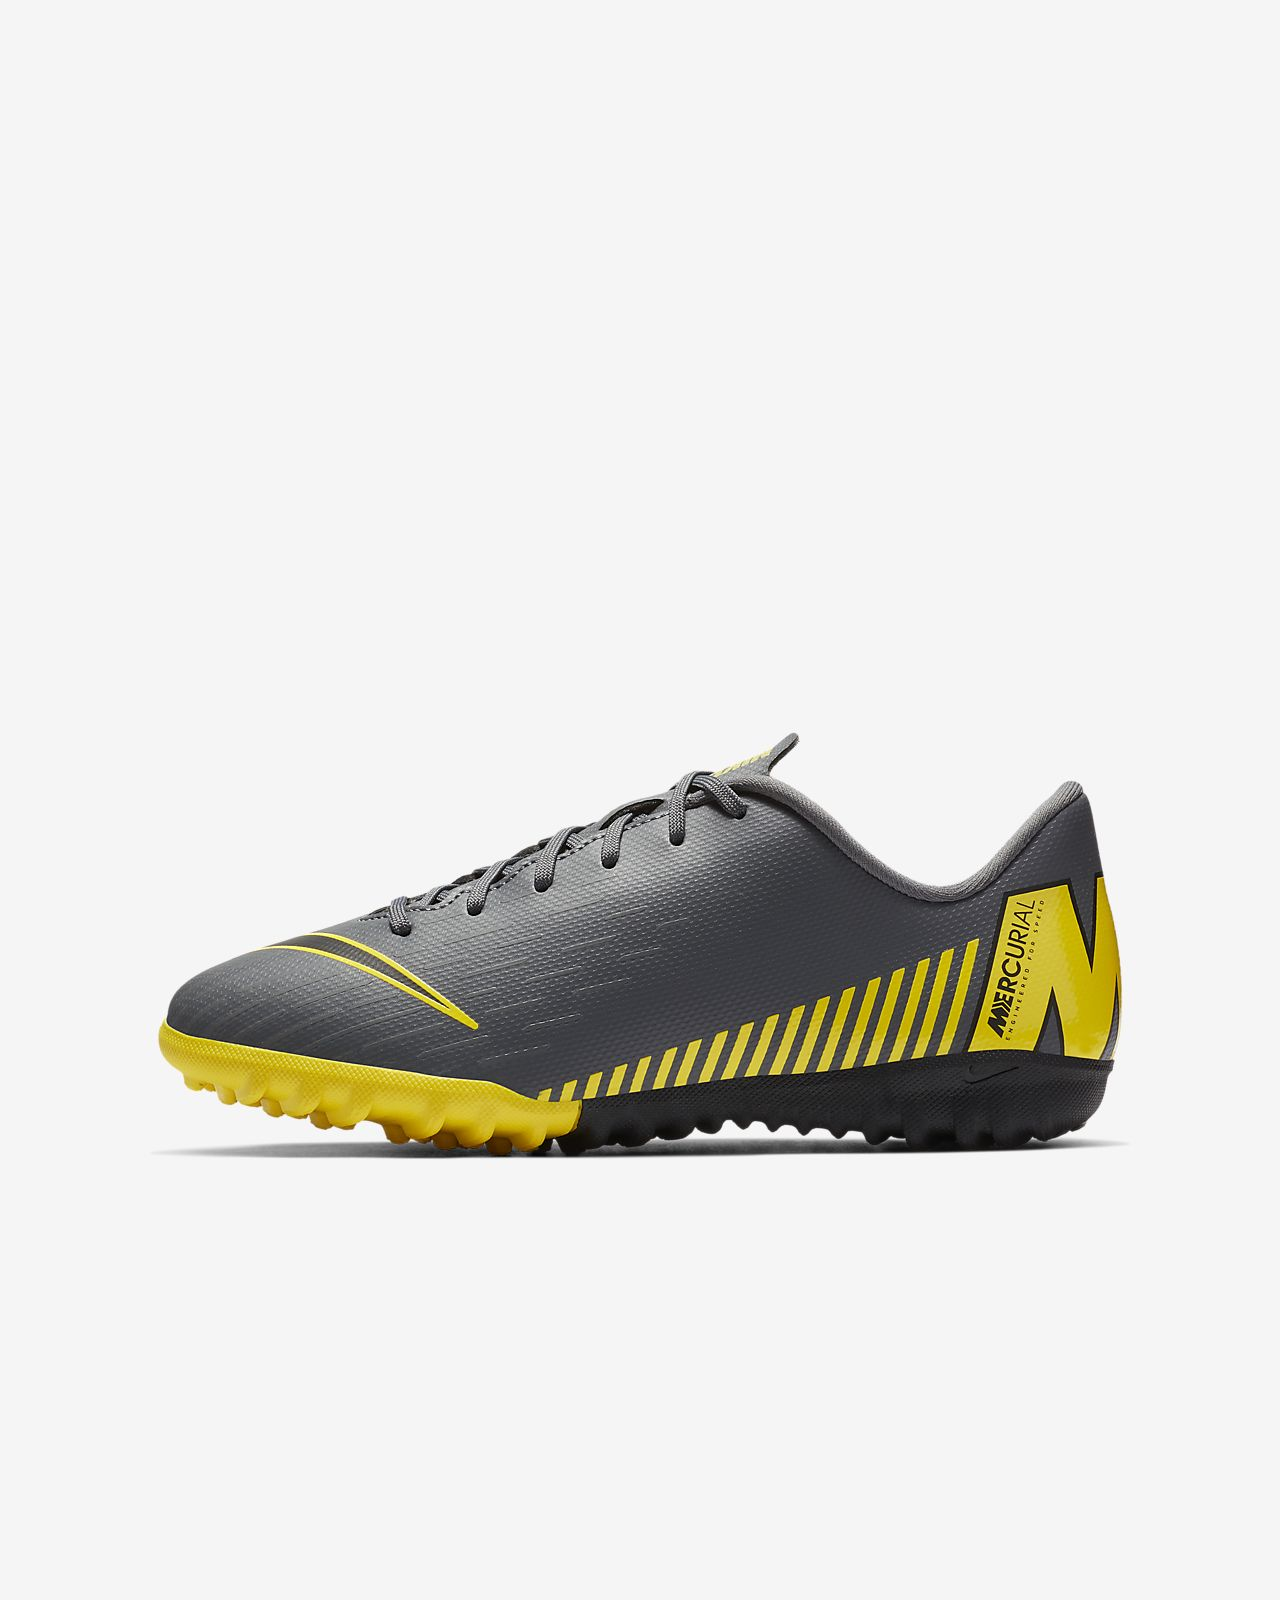 Nike Jr. MercurialX Vapor XII Academy Younger/Older Kids' Turf Football Shoe